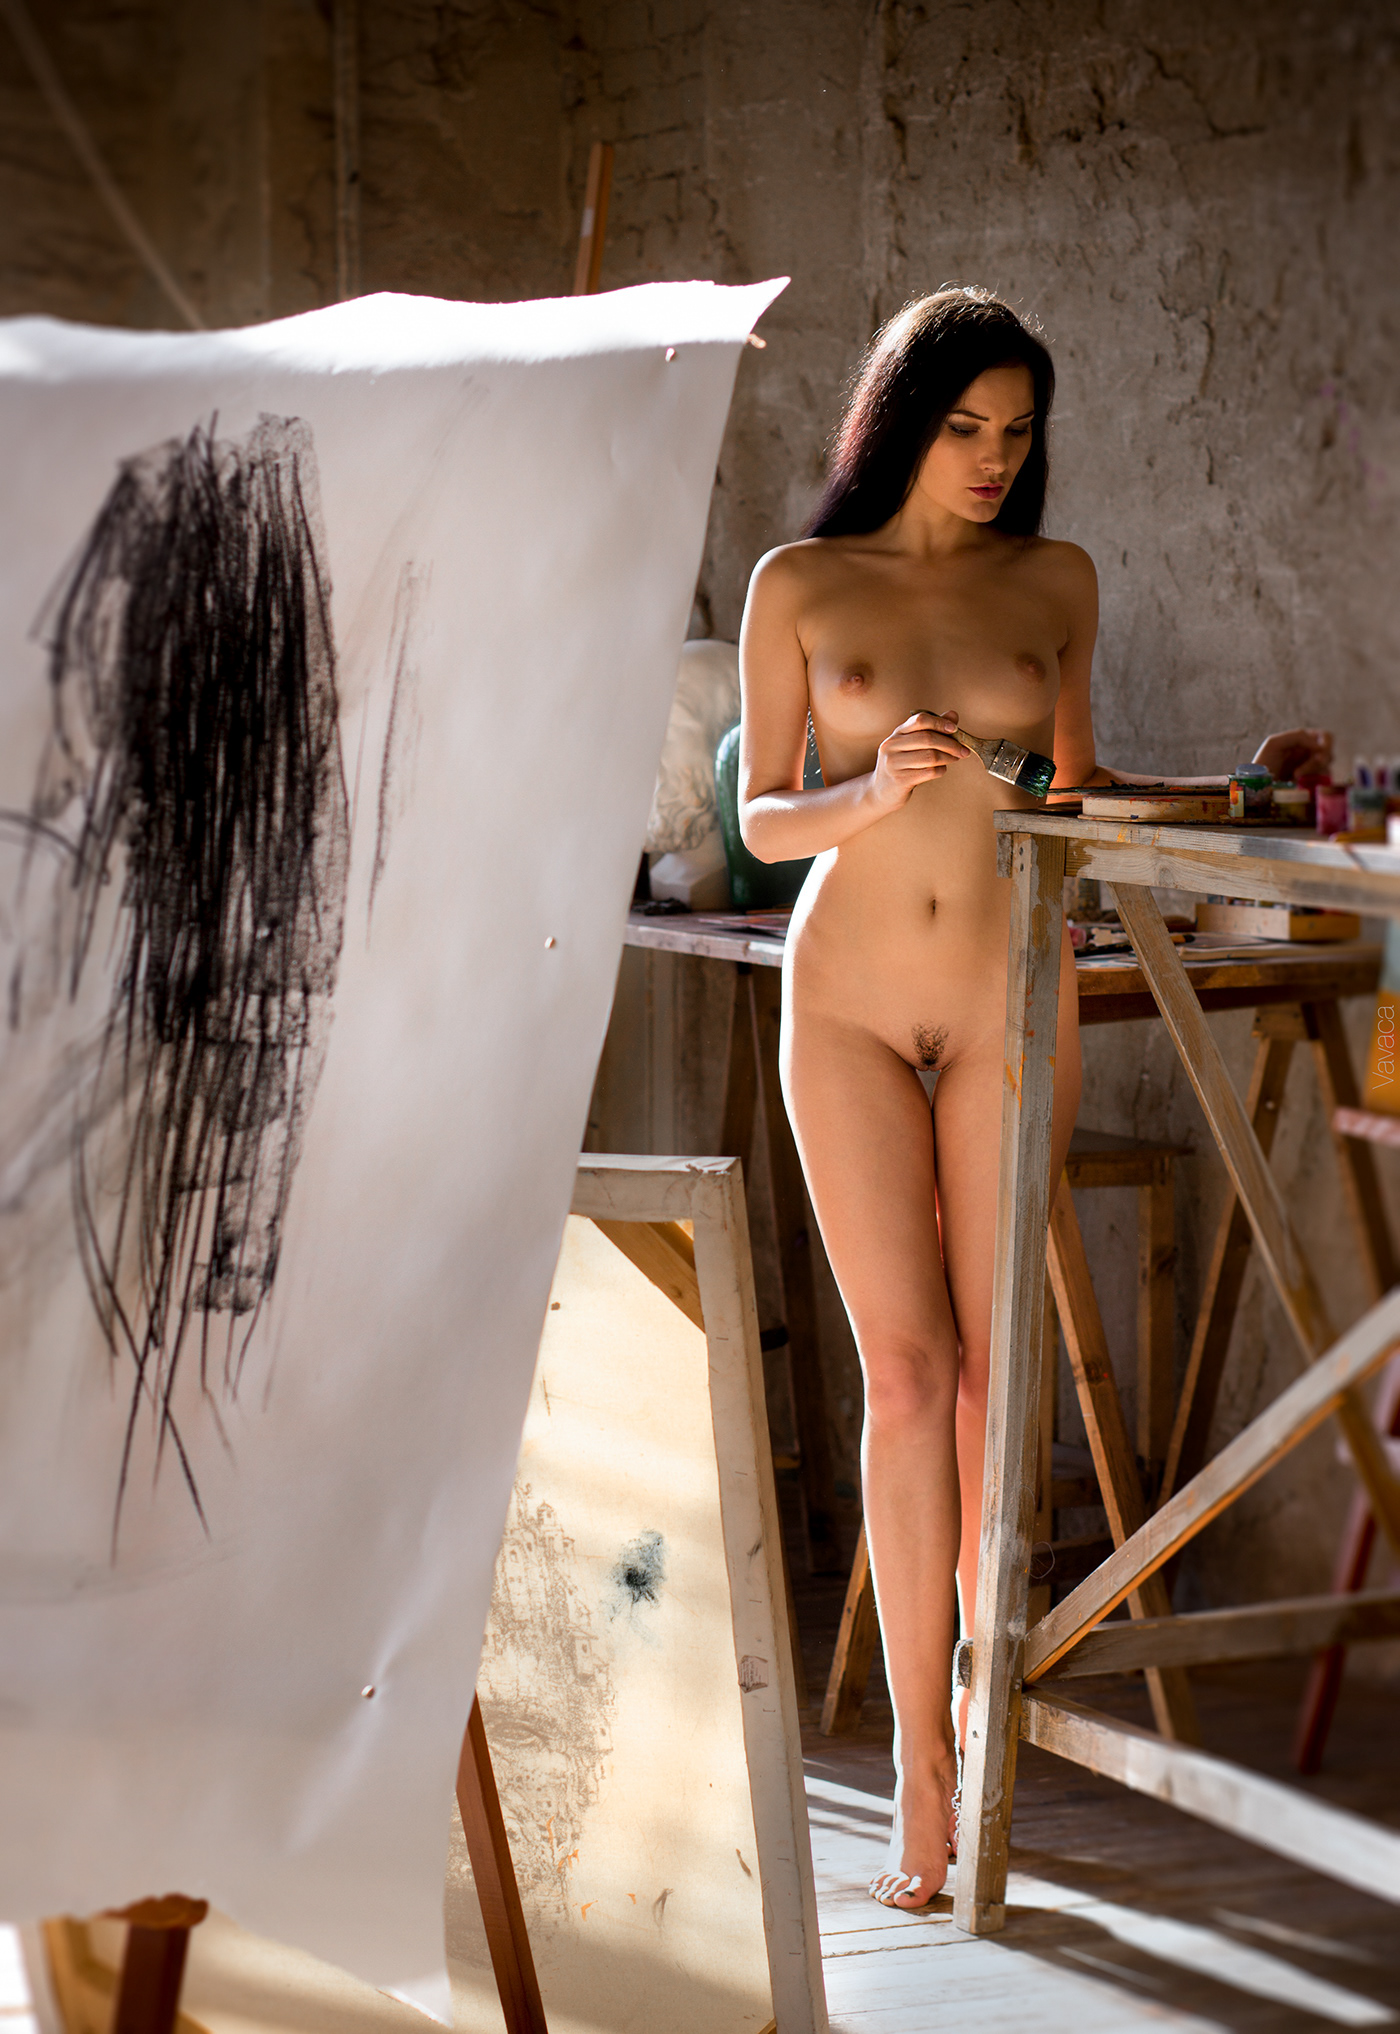 Morning Painting * Model Chira Kovalsky / фото Vladimir Nikolaev